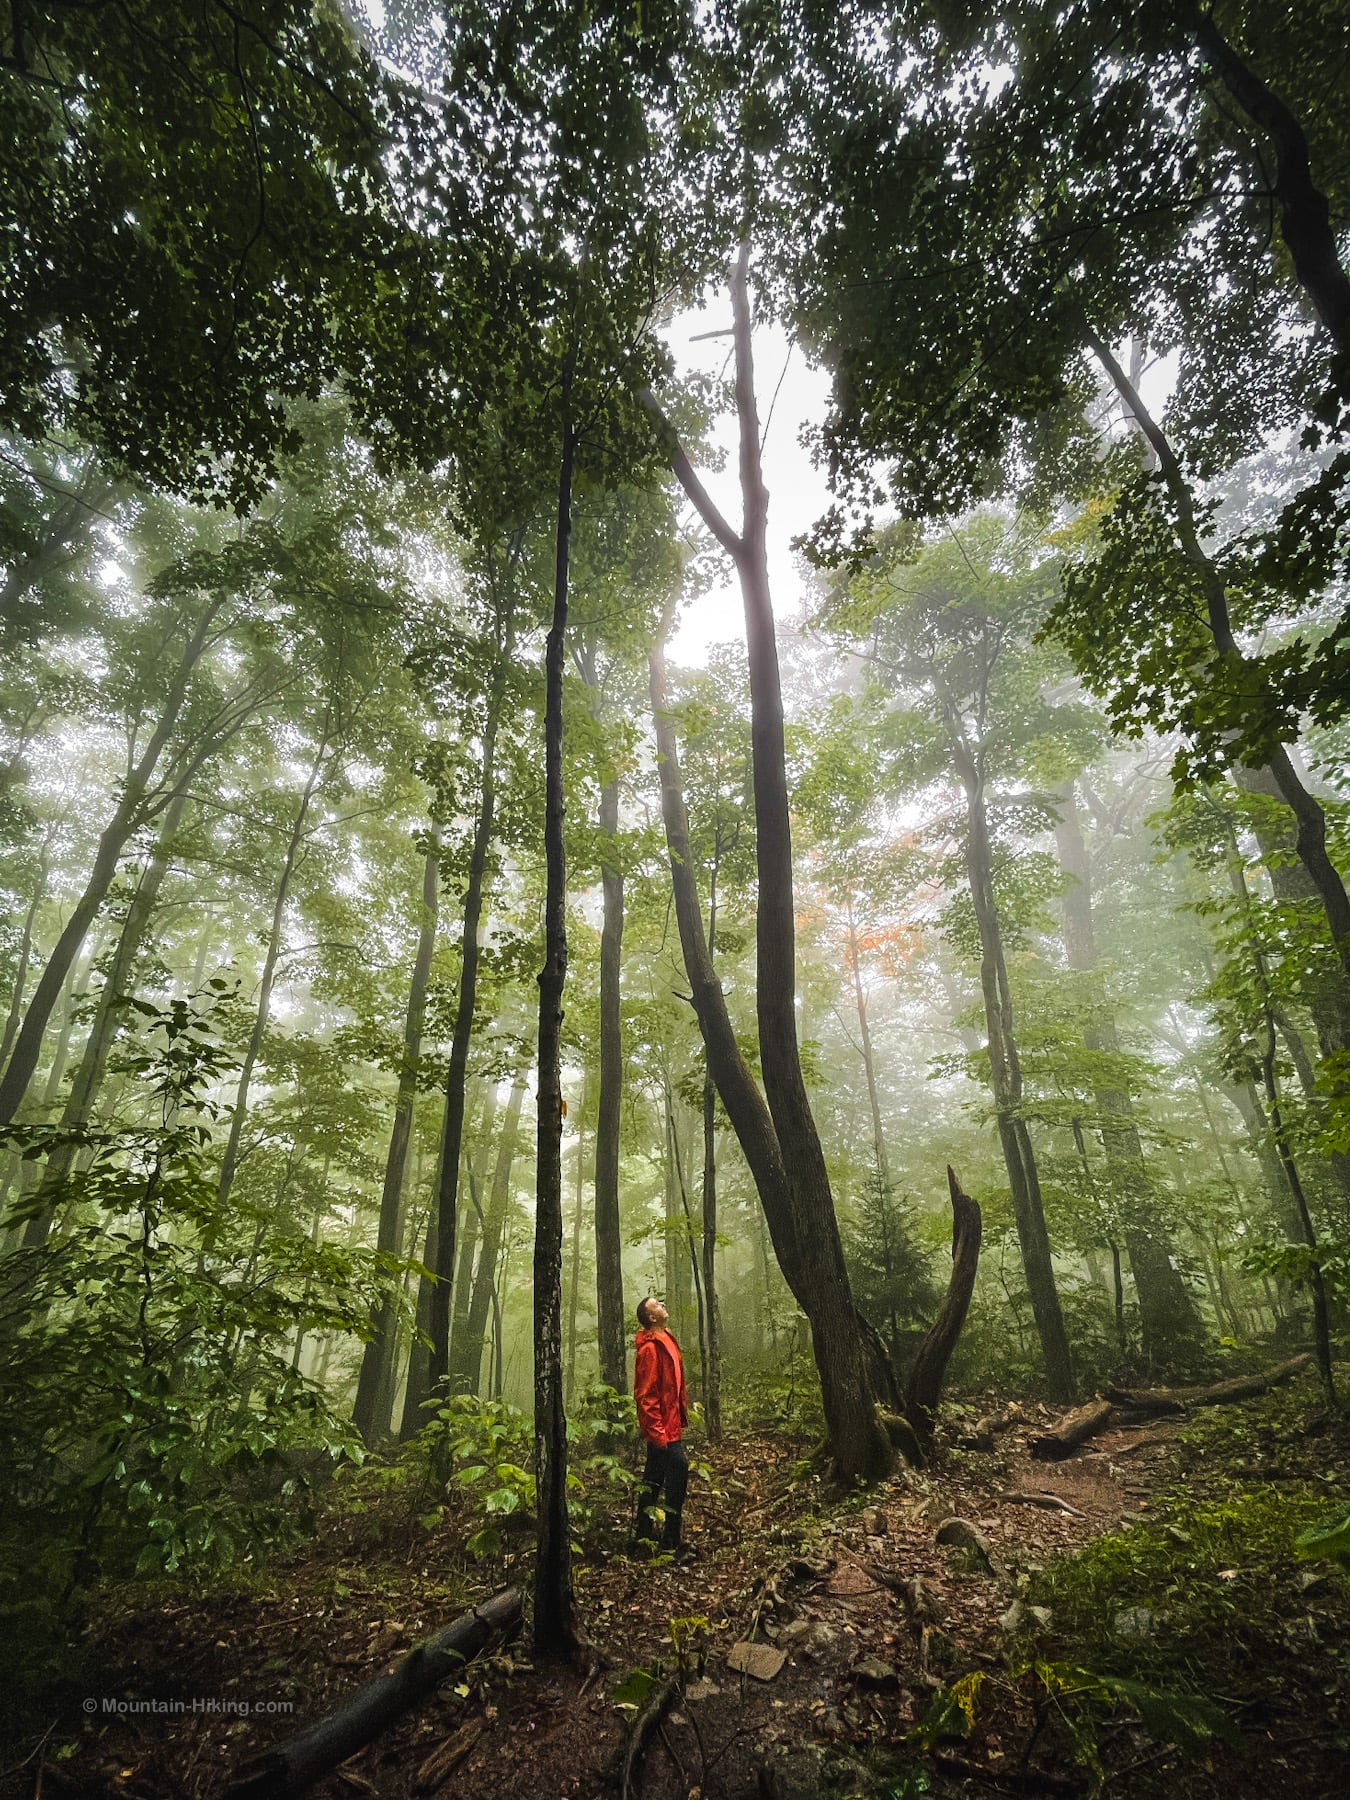 hiking safe with proper clothing and rain gear